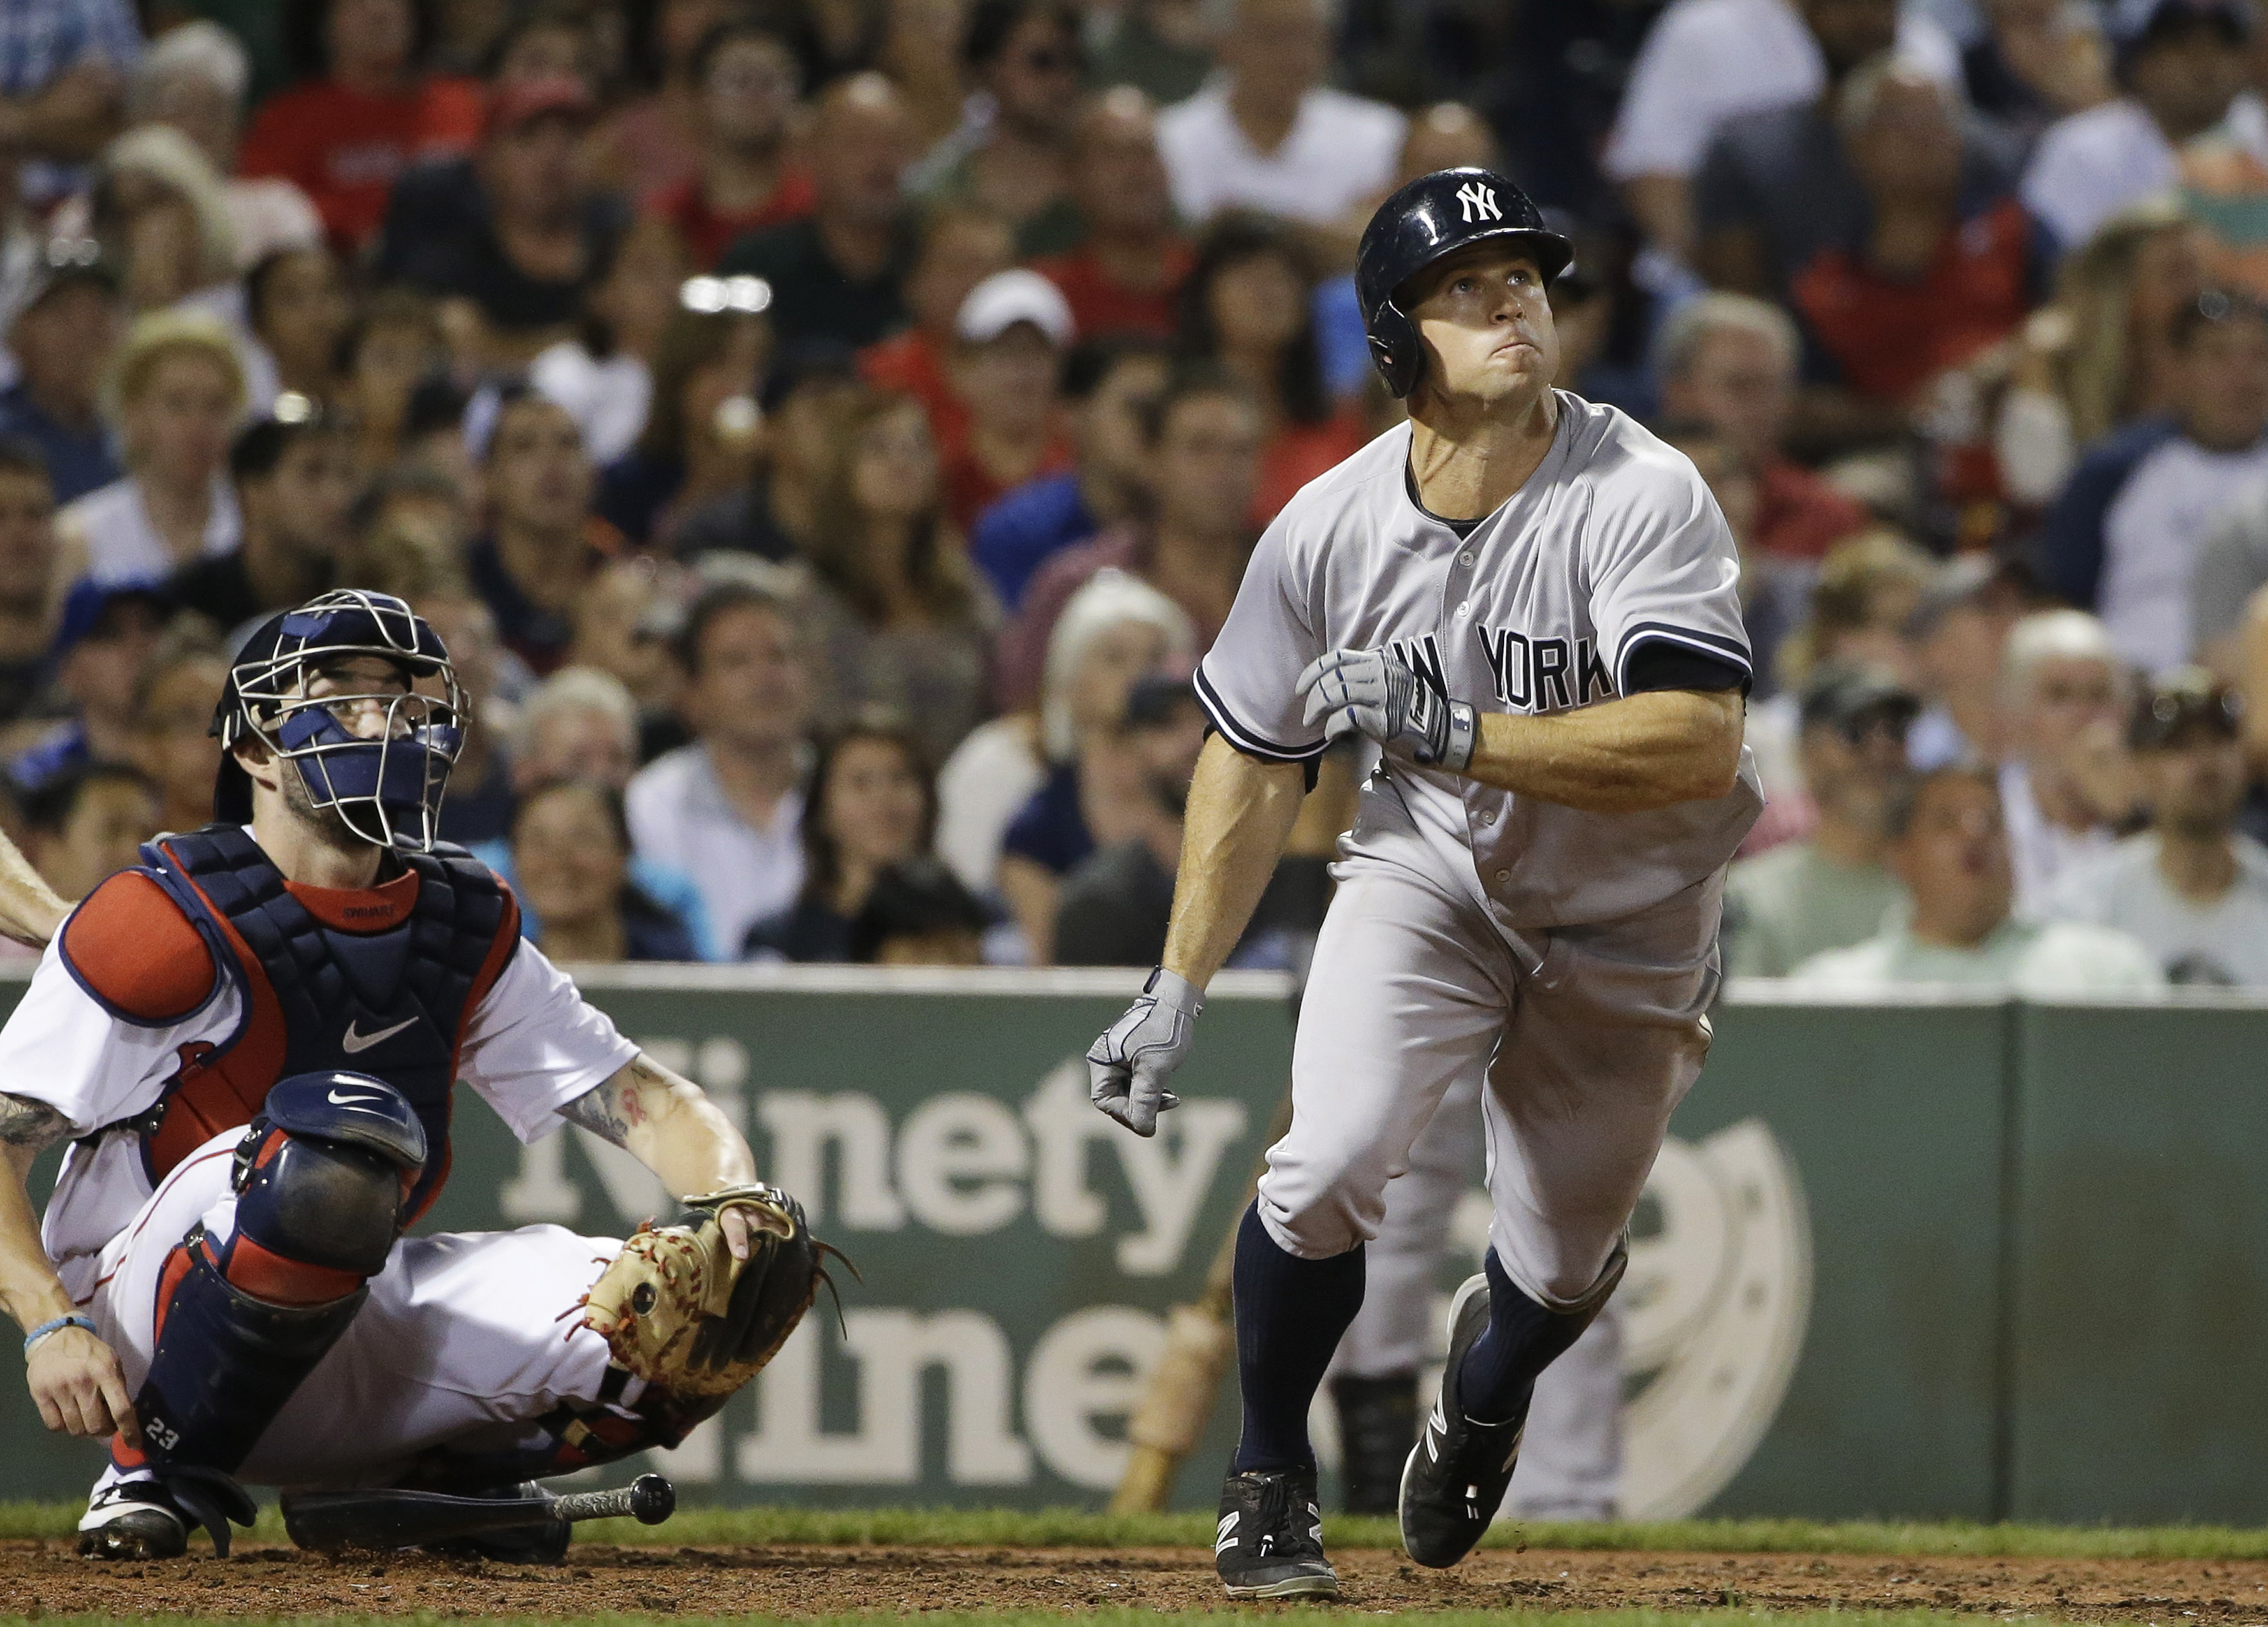 New York Yankees' Brett Gardner watches the flight of his home run as Boston Red Sox catcher Blake Swihart, left, does as well, during the eighth inning of a baseball game, Tuesday, Sept. 1, 2015, at Fenway Park, in Boston. (AP Photo/Steven Senne)